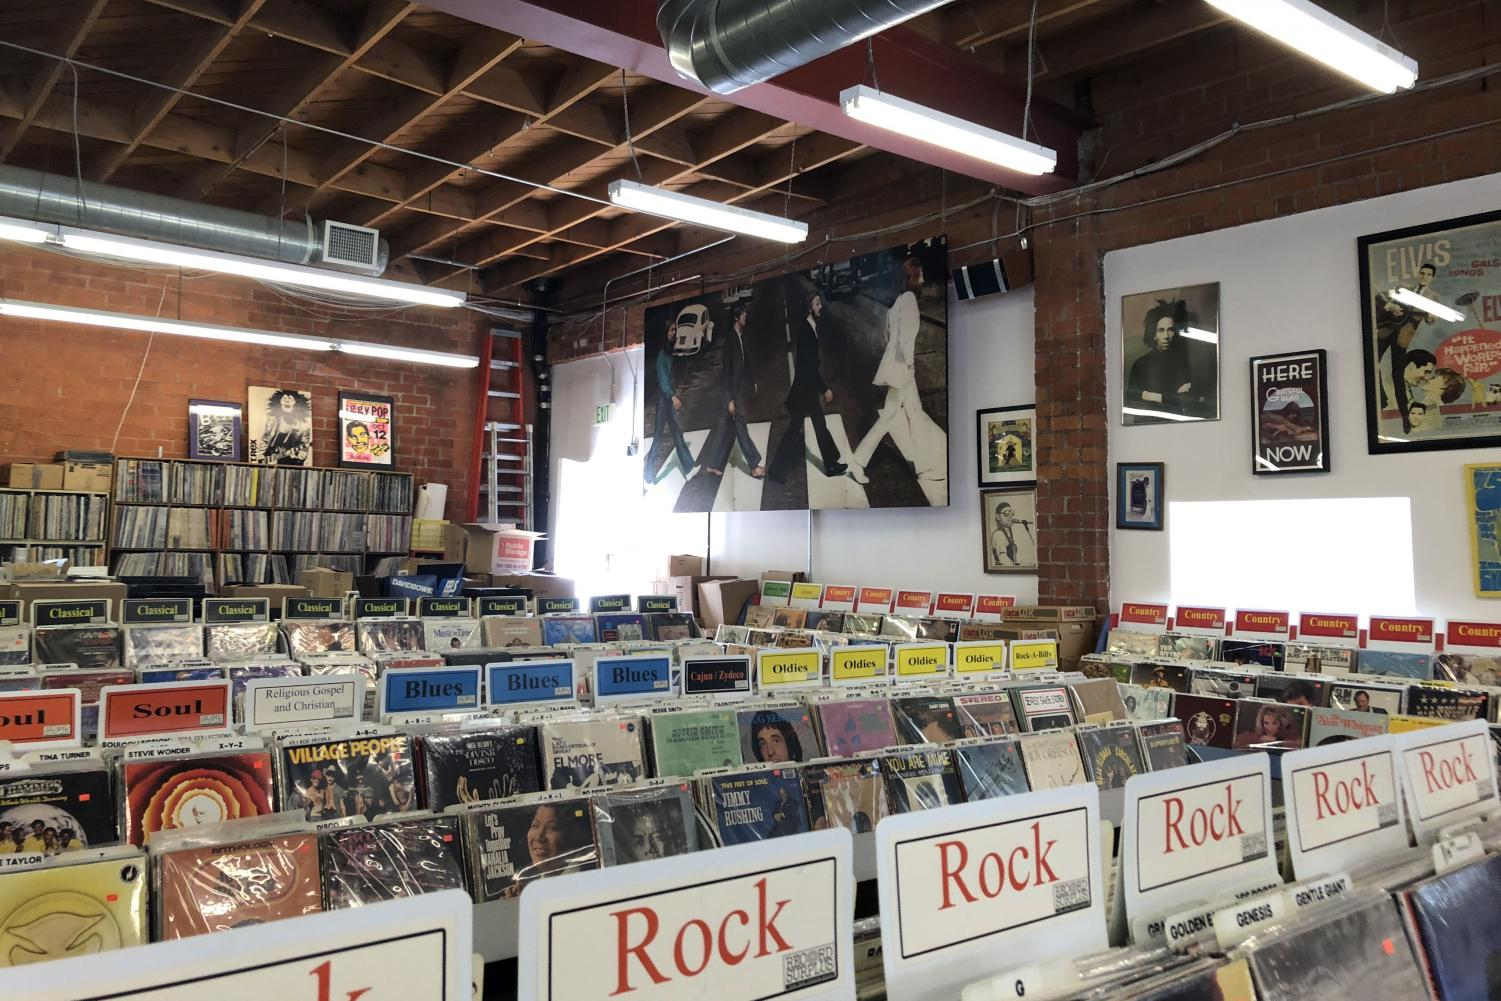 The Record Surplus store, located on Santa Monica Boulevard between South Centinela Avenue and South Carmelina Avenue, has been in business since 1985. The store sells vinyl records, CDs and other music-related items.